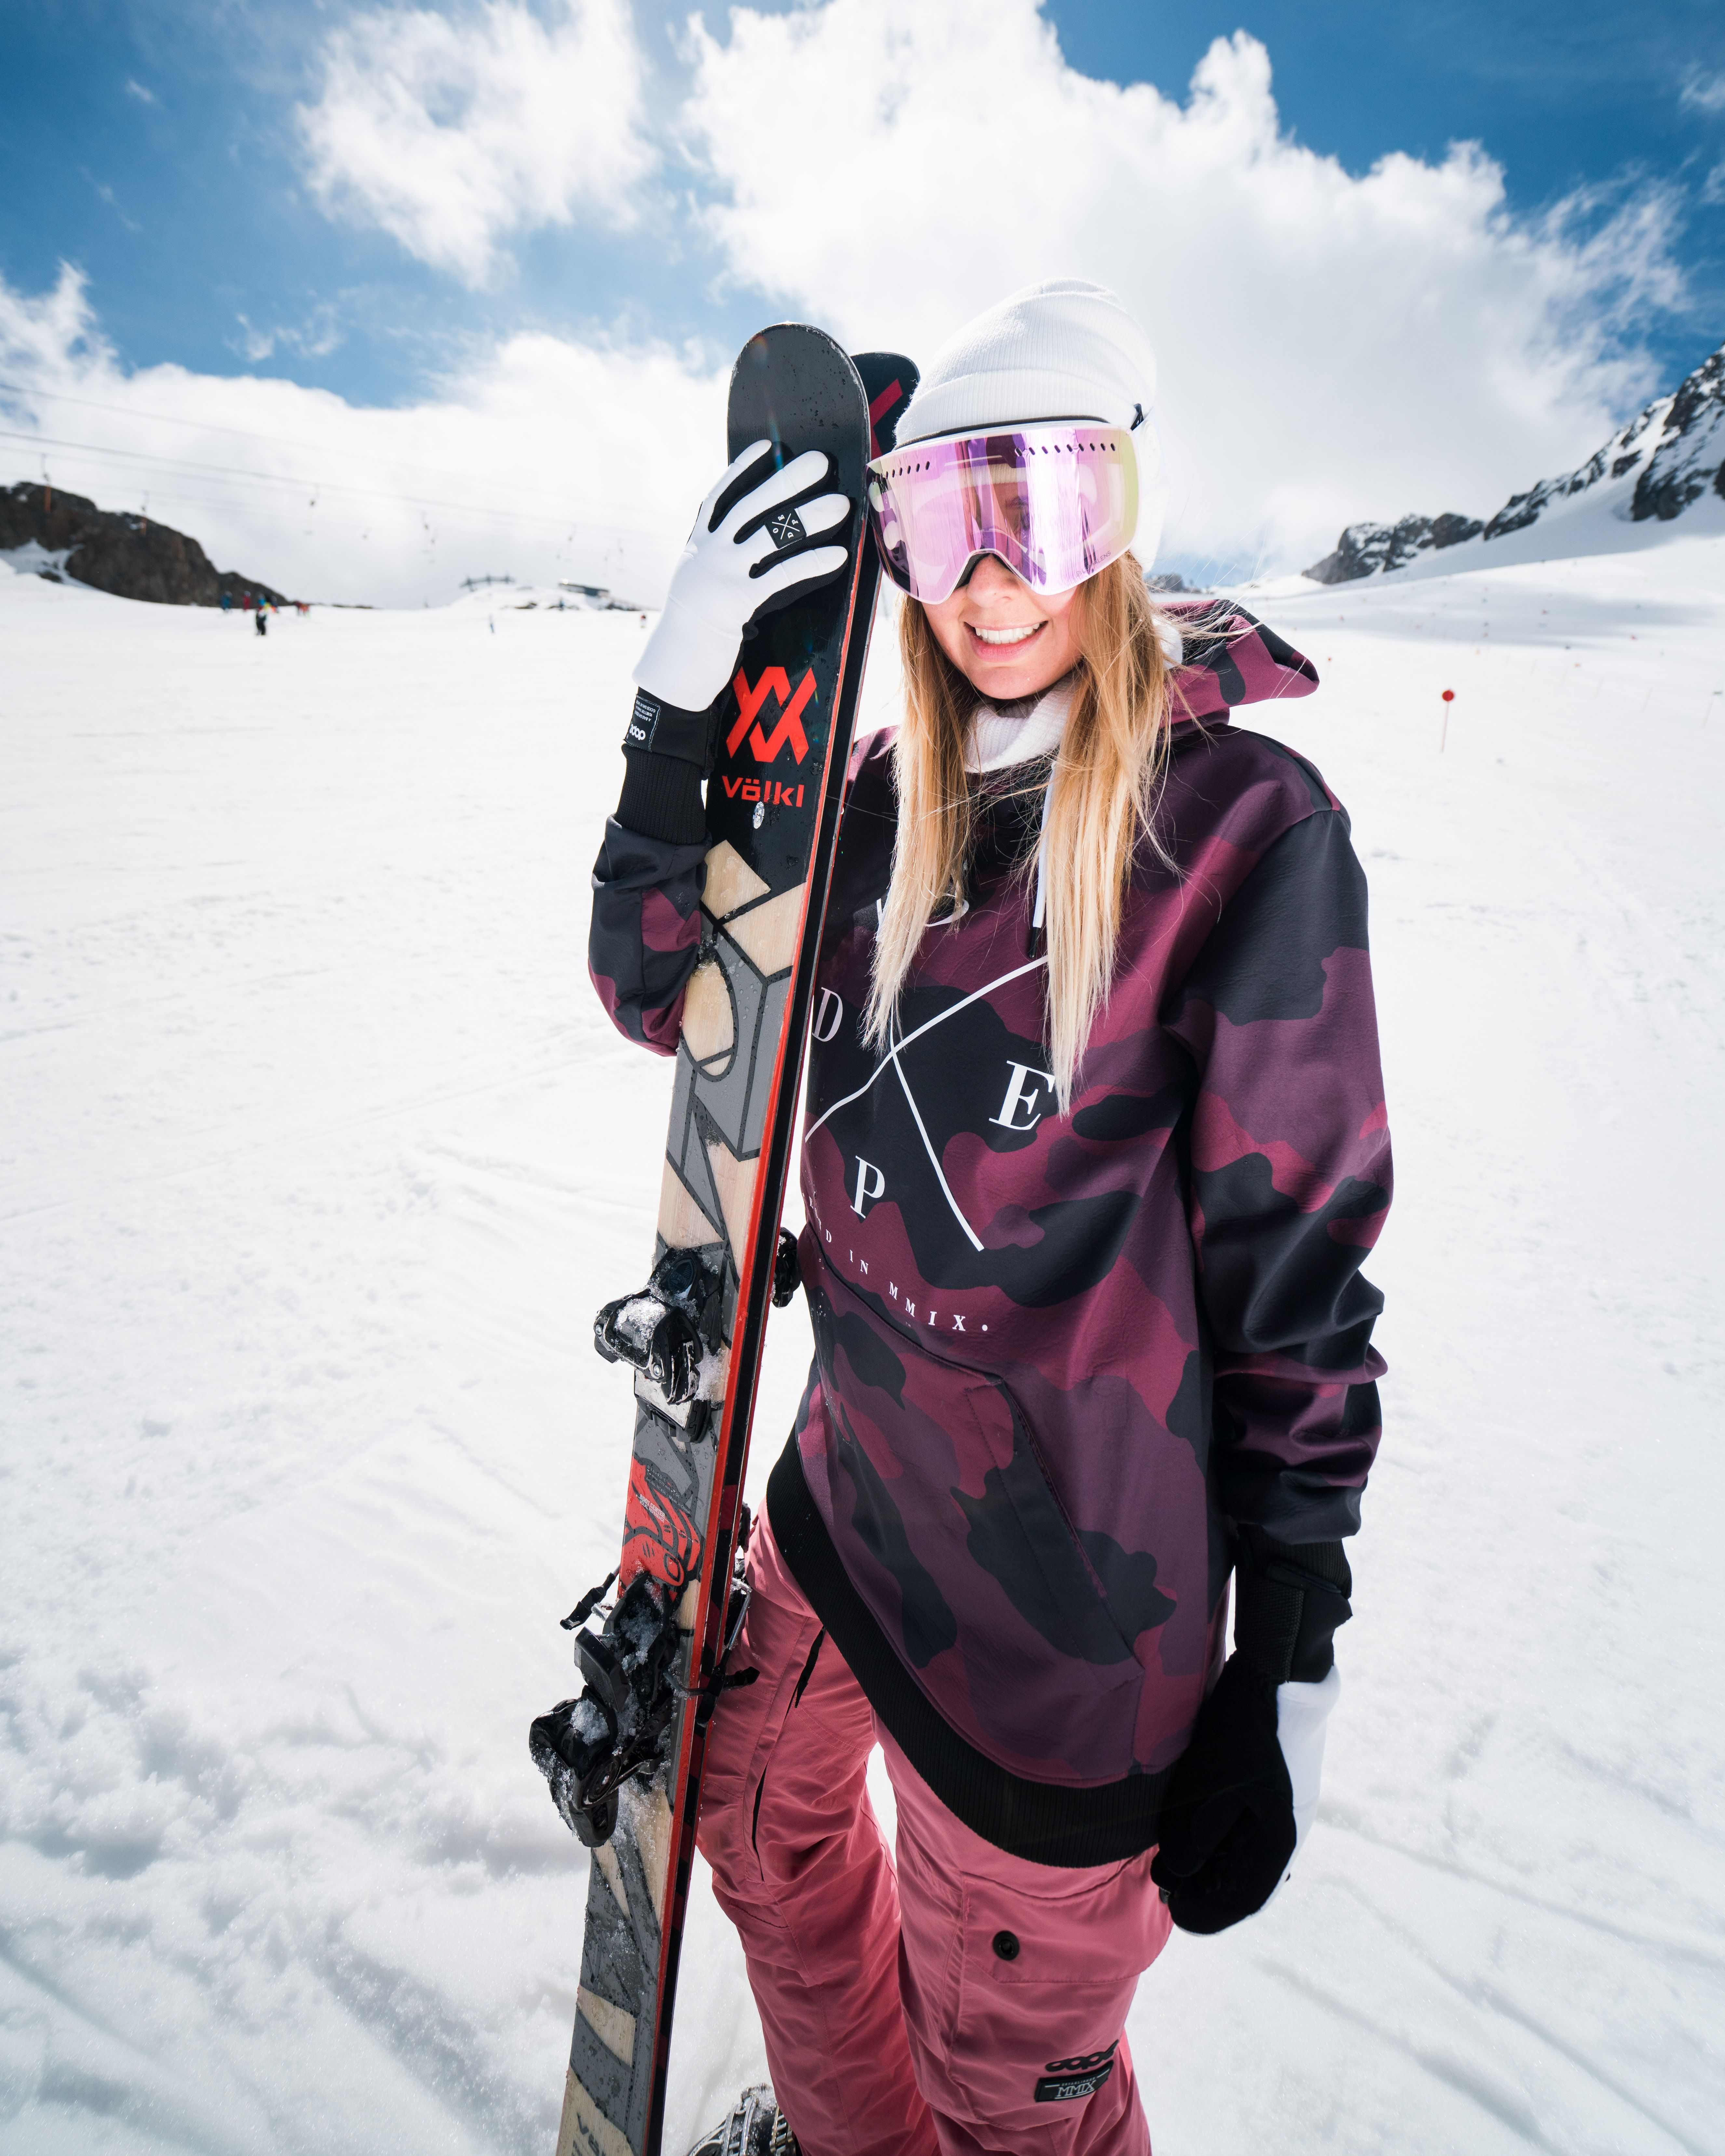 Pin by Heidi Morris on So Me | Snowboarding outfit, Outdoor